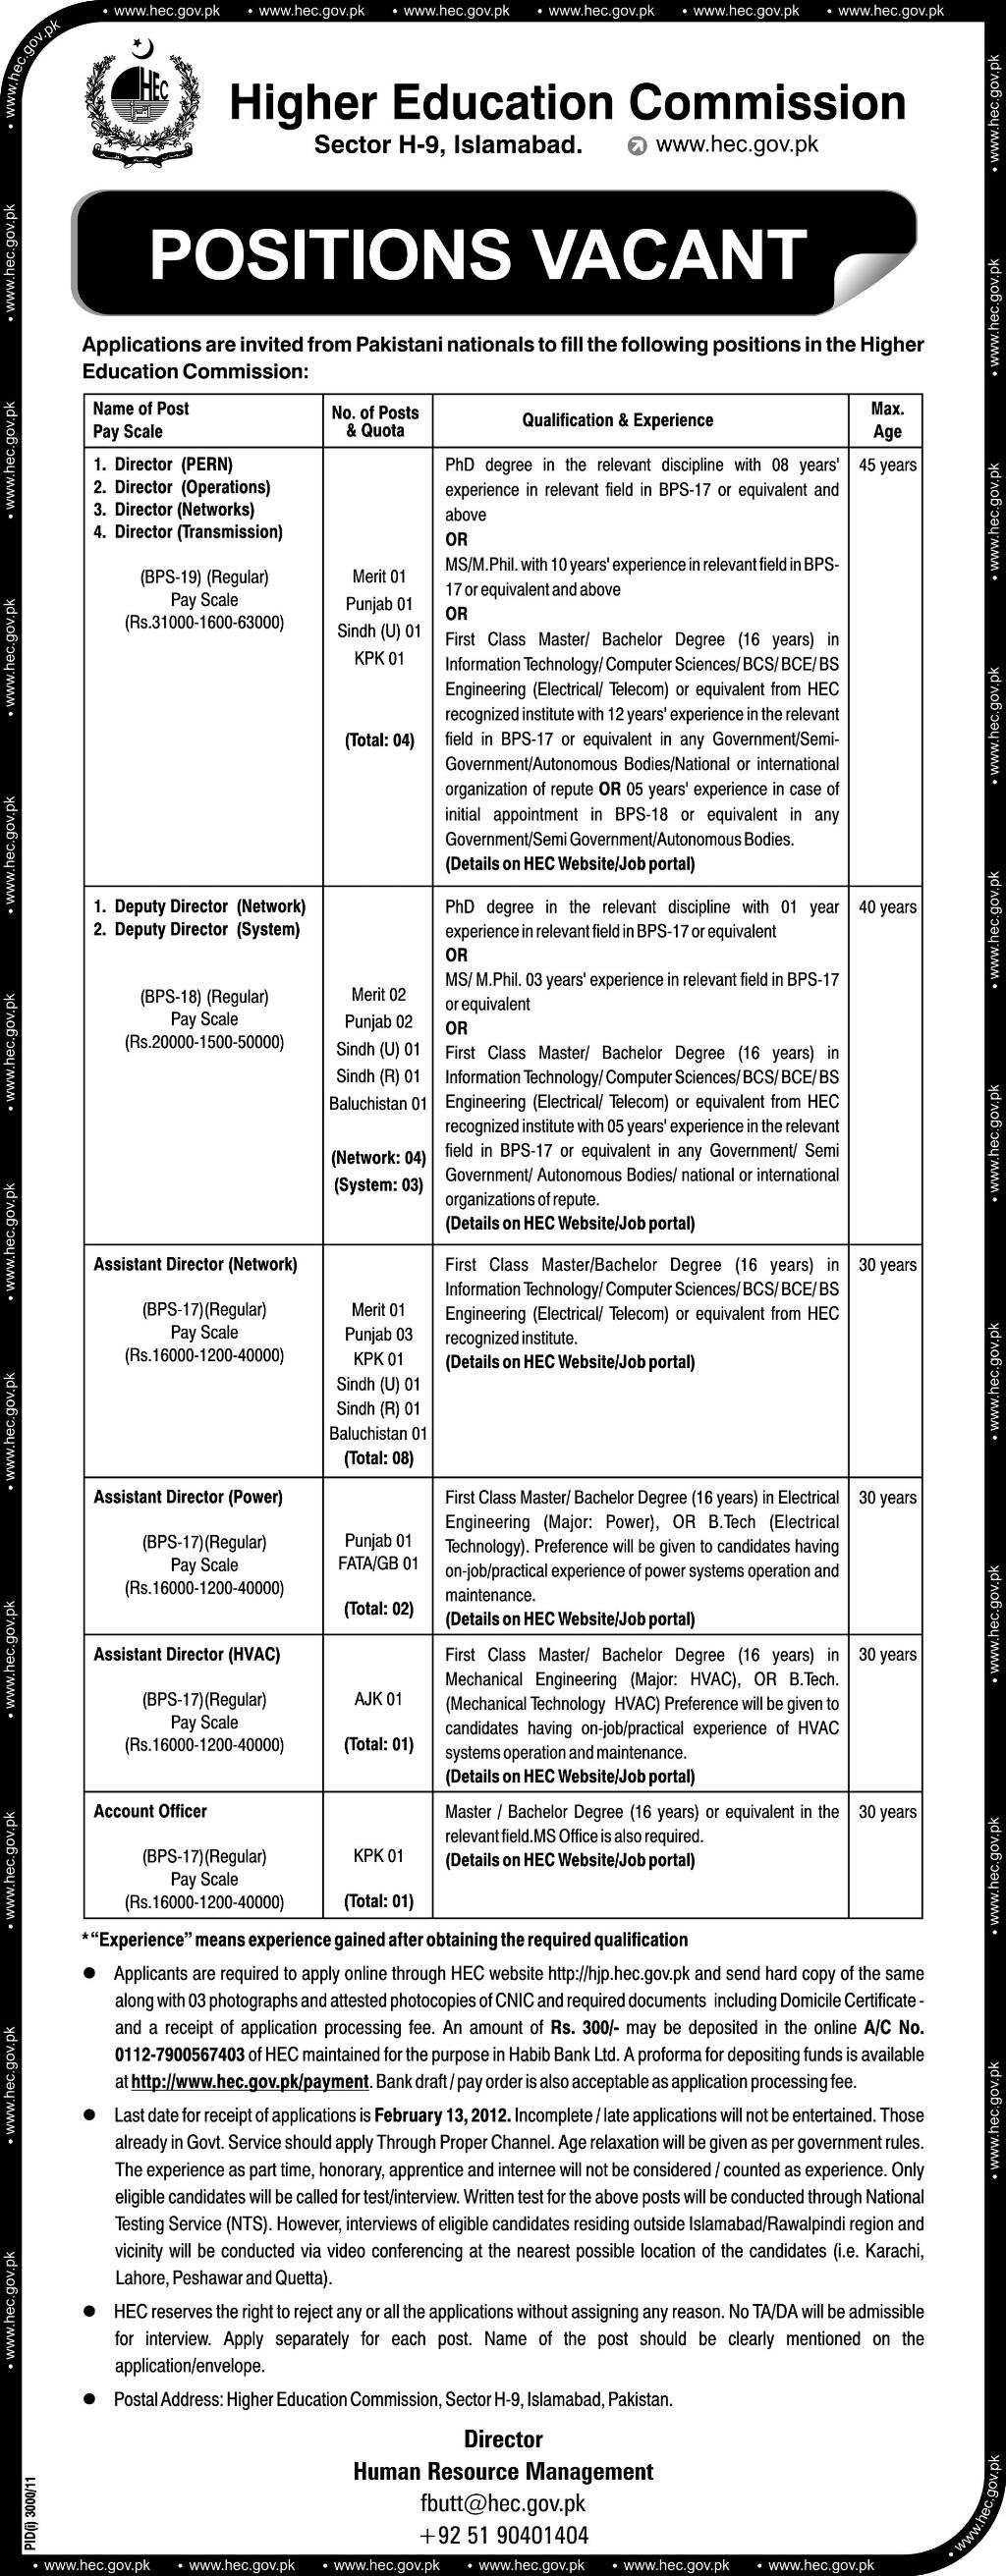 Higher Education Commission Pakistan Jobs Opportunities